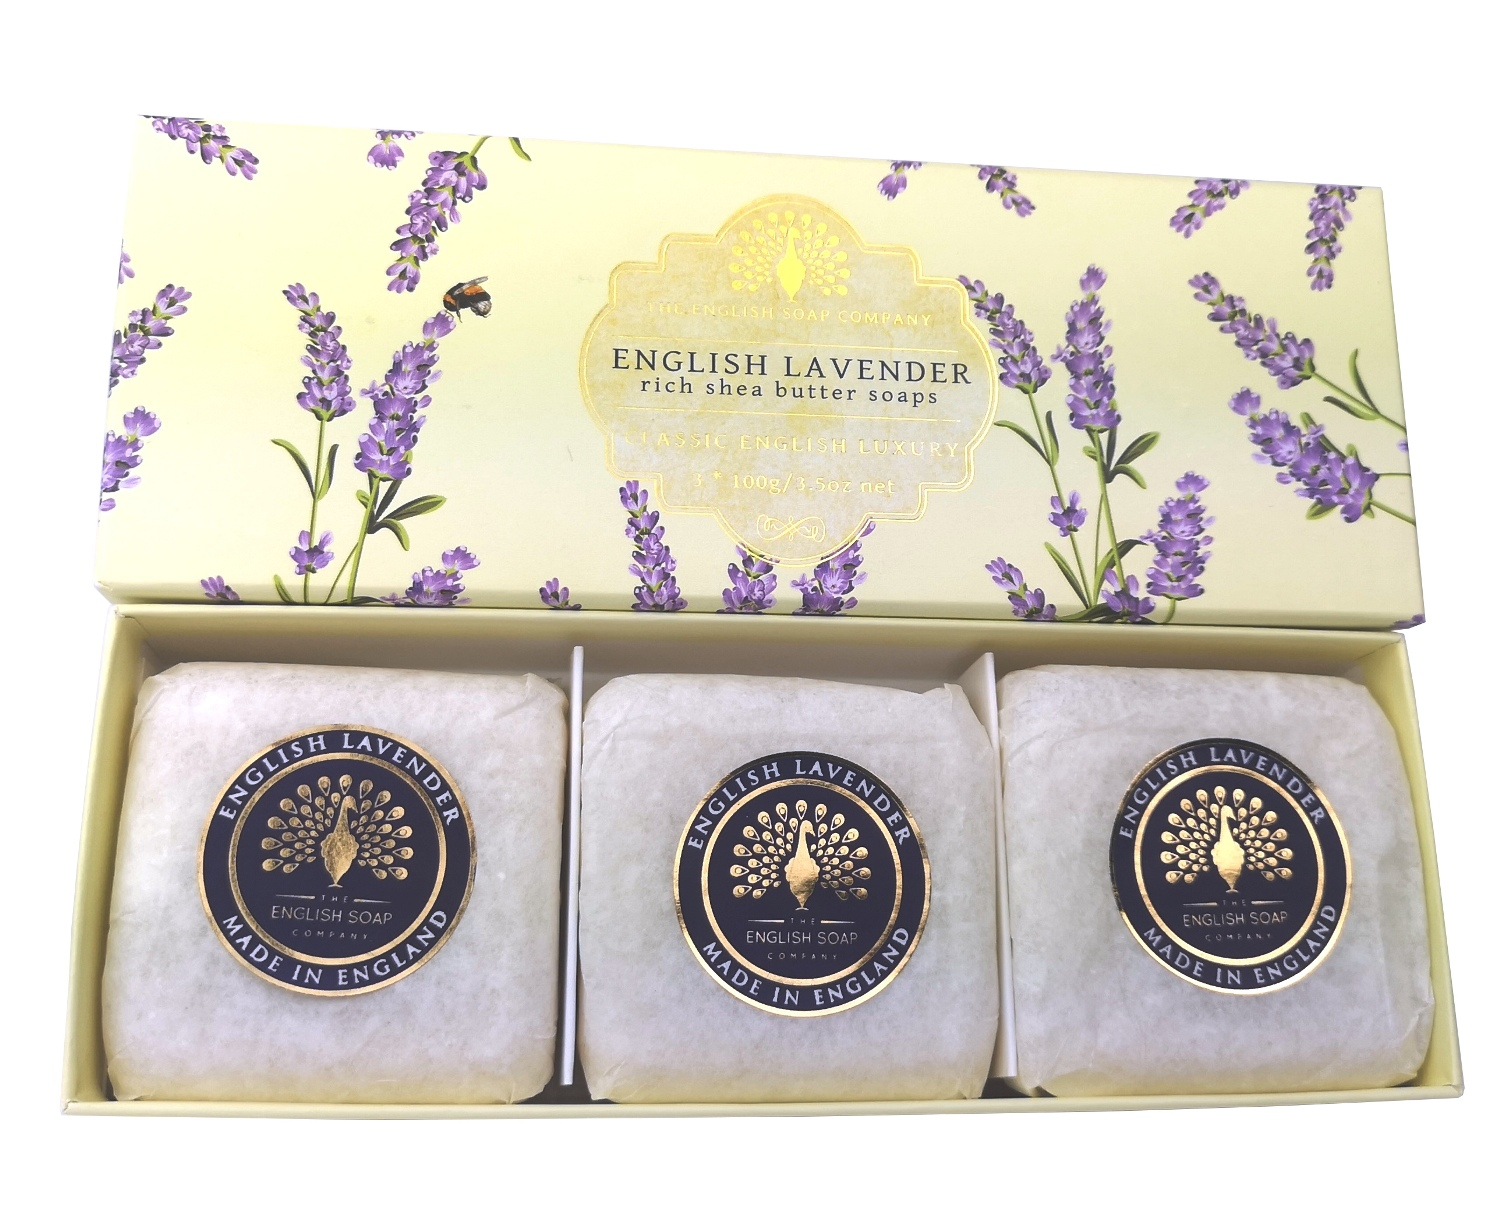 THE ENGLISH SOAP COMPANY Luxury Shea Butter Soap